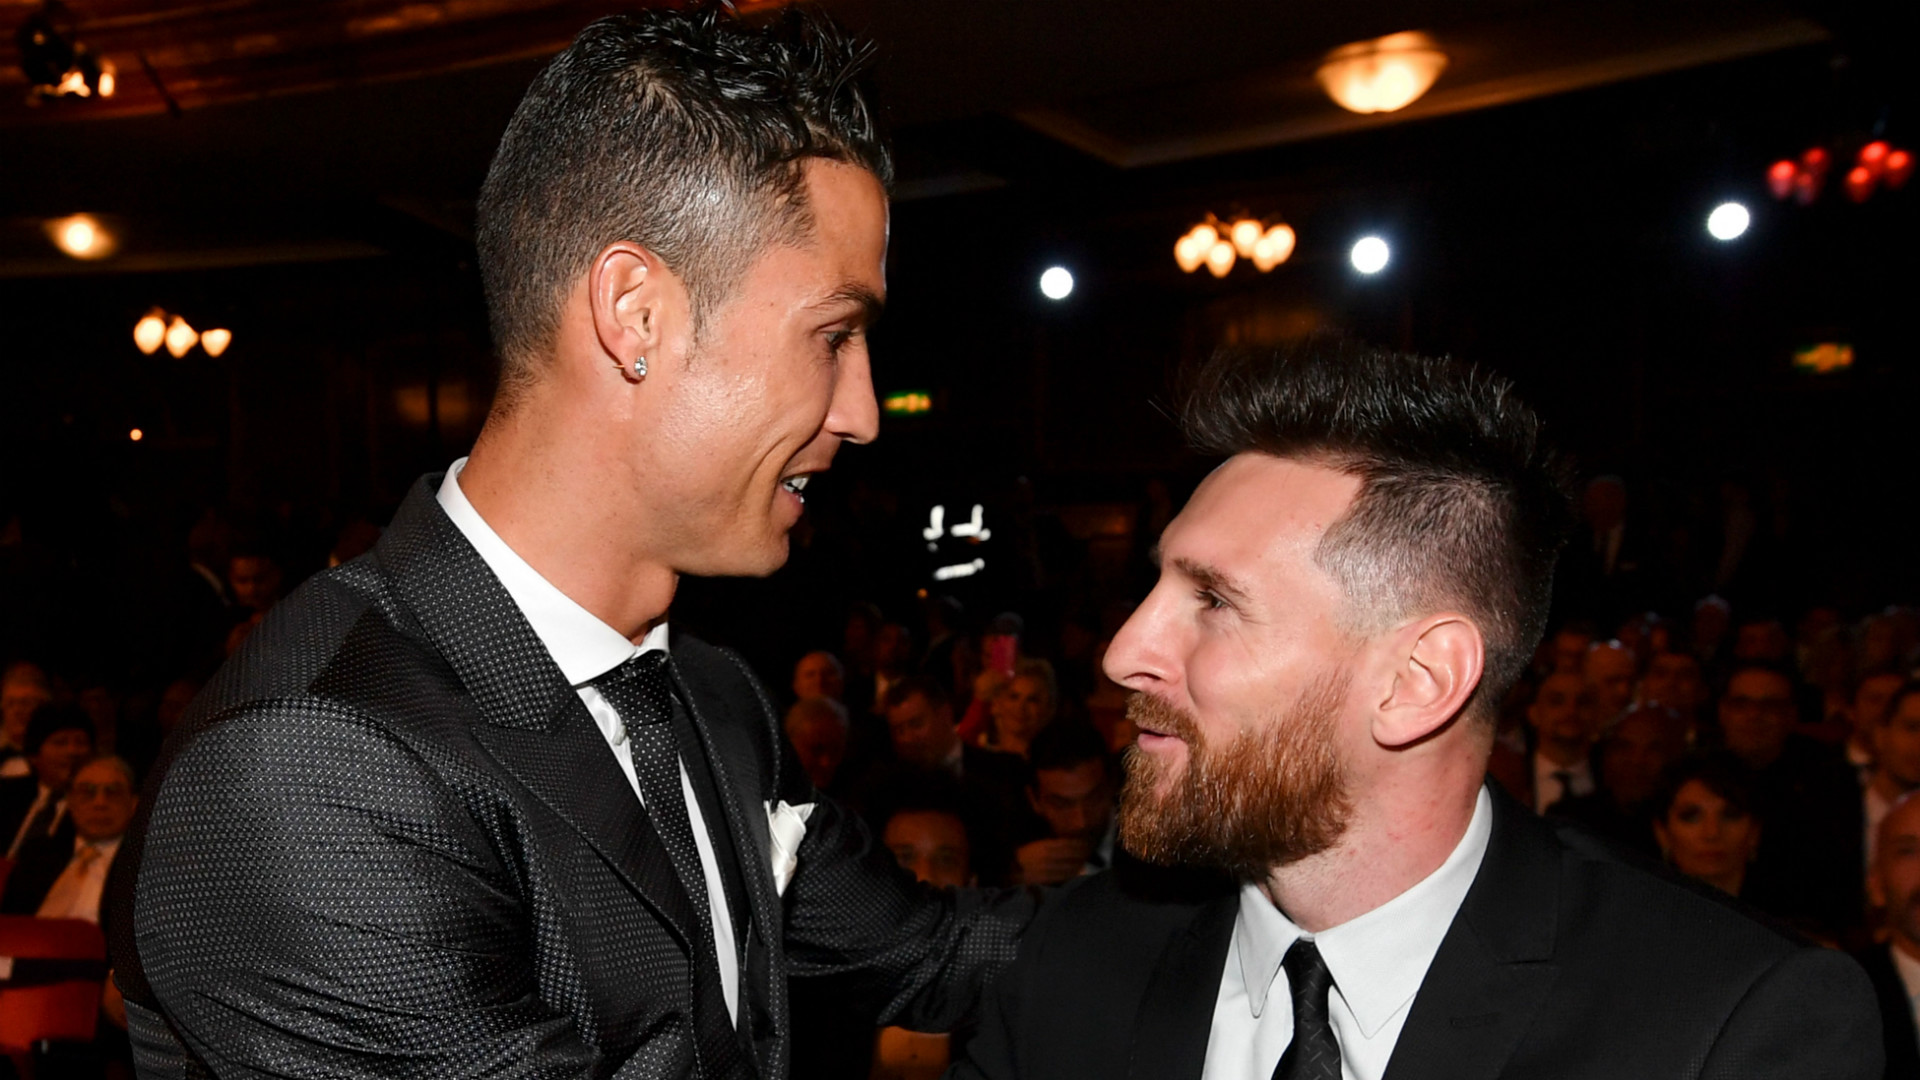 Messi would be tempted by Guardiola reunion at Man City or playing alongside Ronaldo at Juventus, says Rivaldo amid Barcelona exit rumours